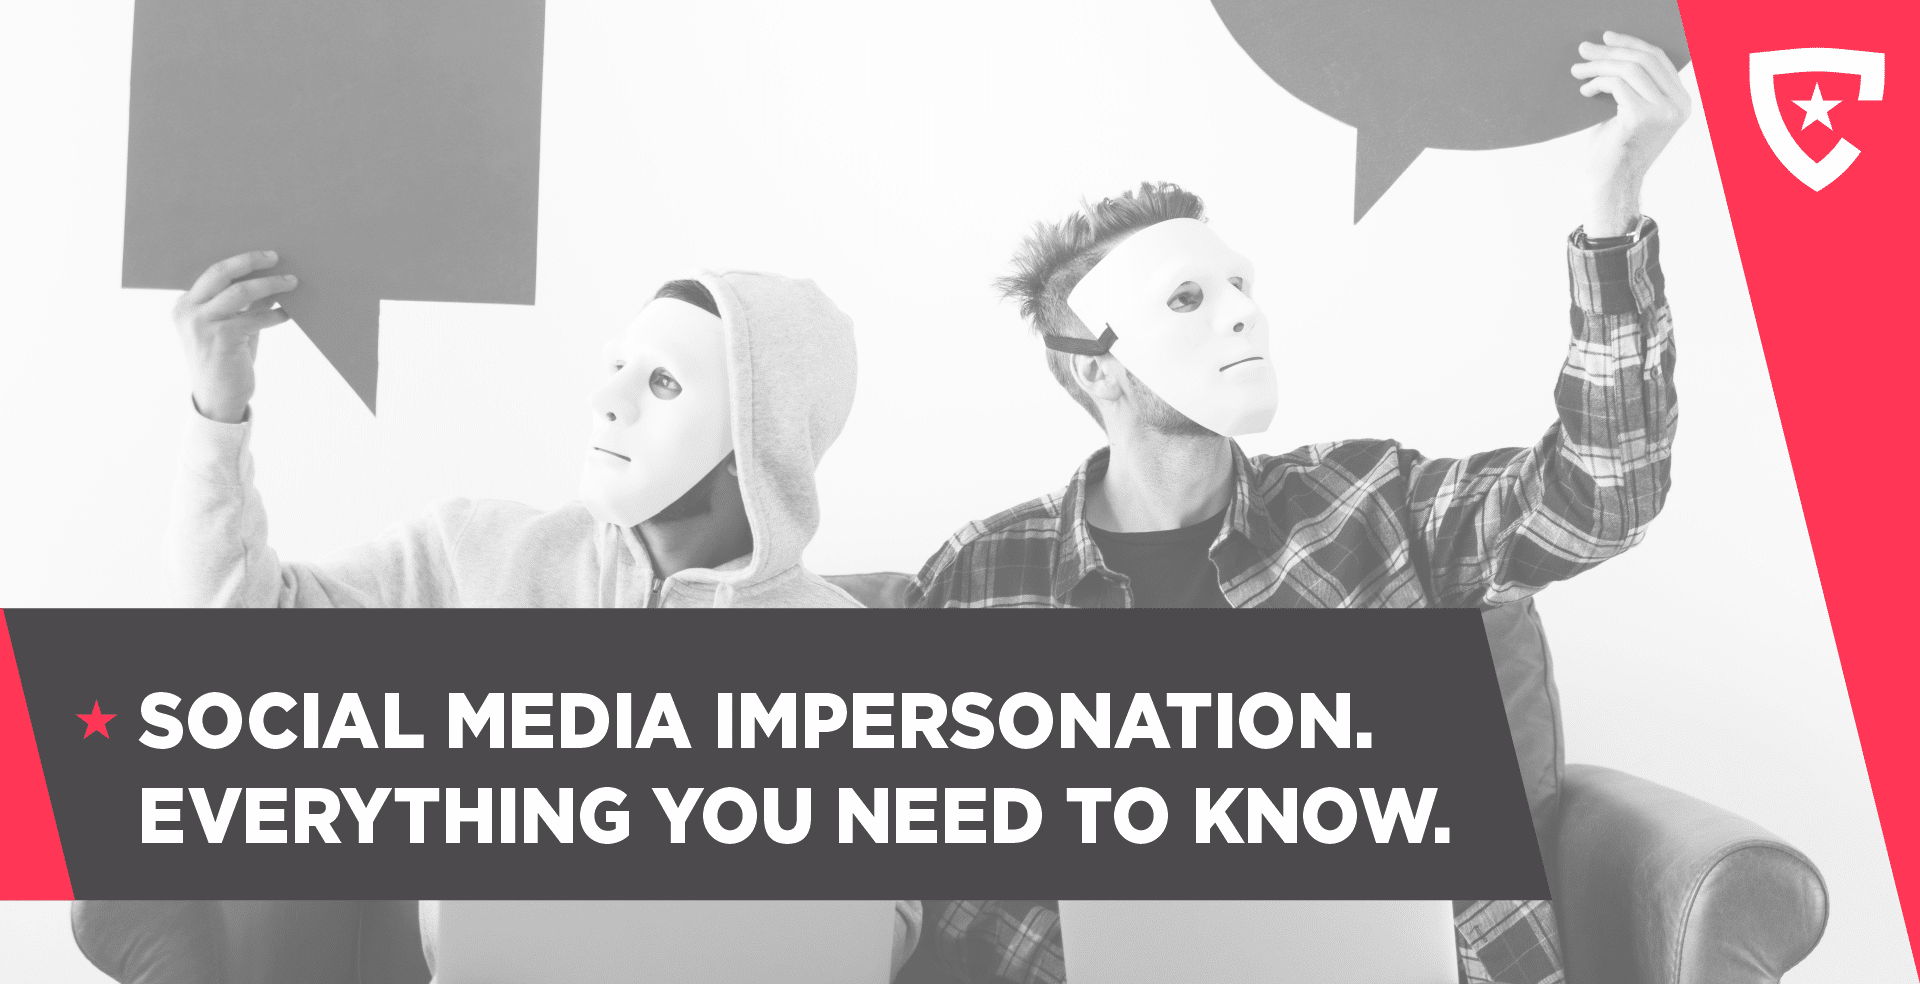 Social Media Impersonation. Everything You Need To Know